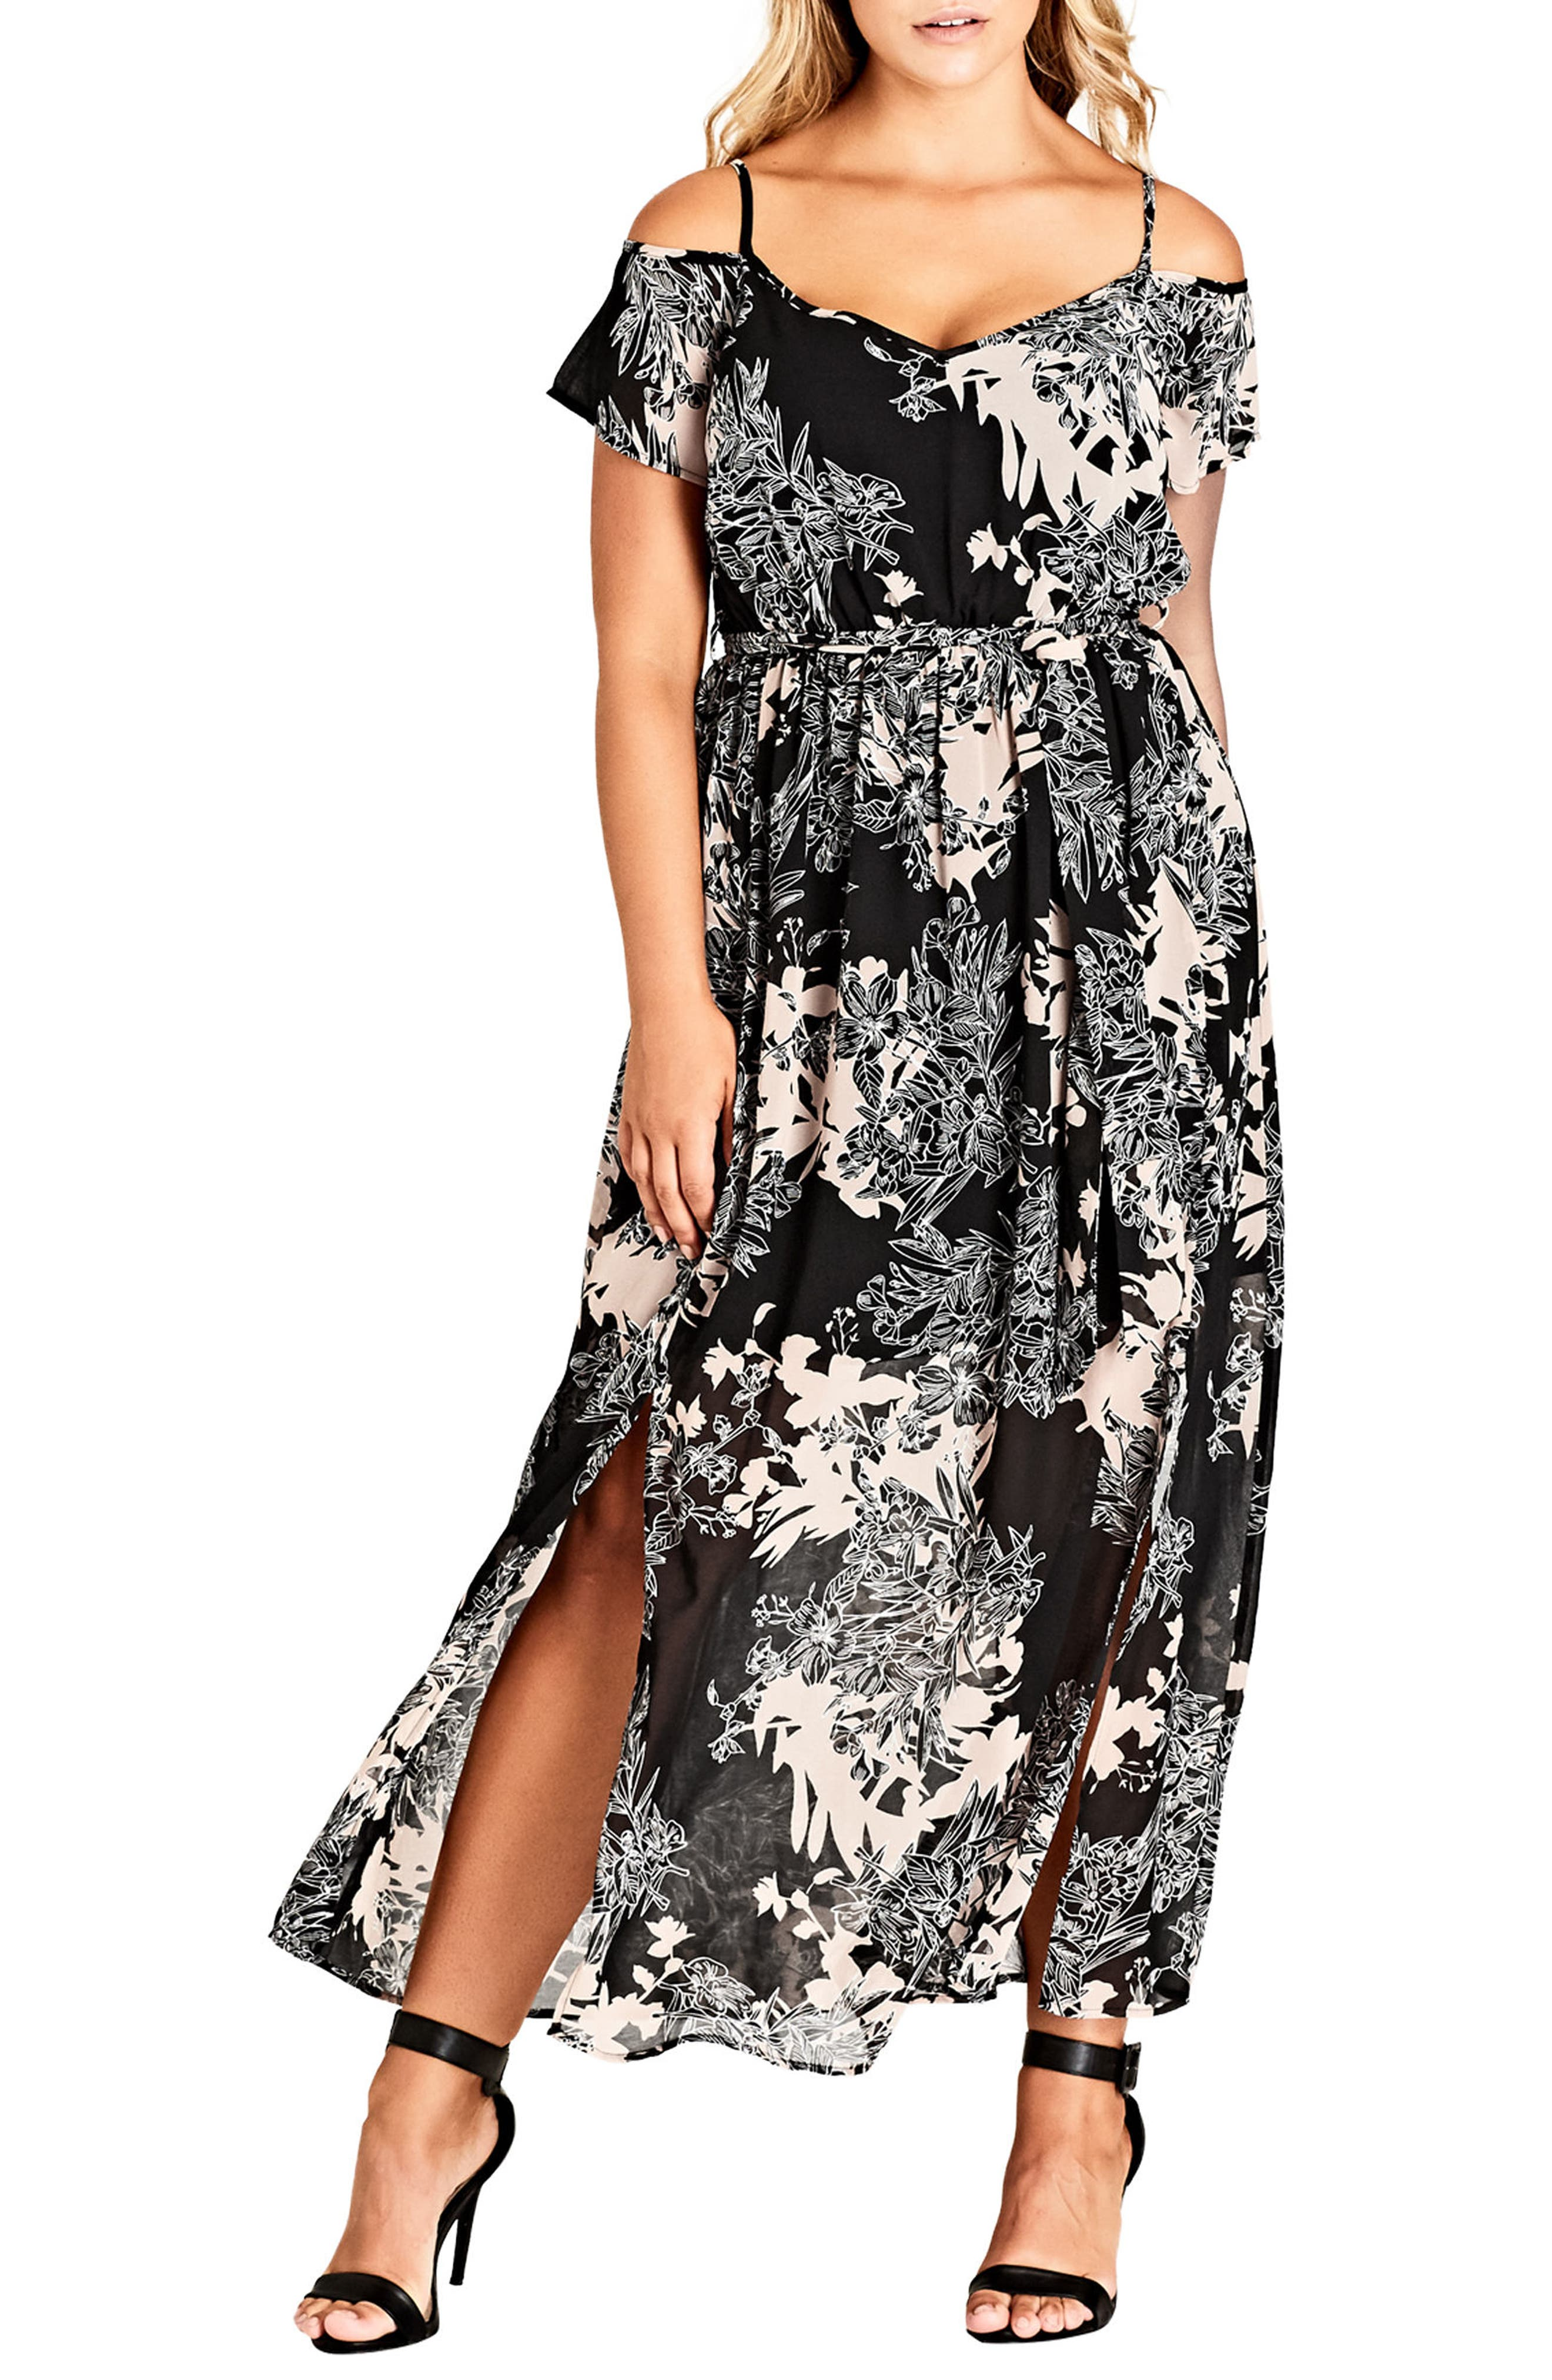 Alternate Image 1 Selected - City Chic Floral Shadow Cold Shoulder Maxi Dress (Plus Size)